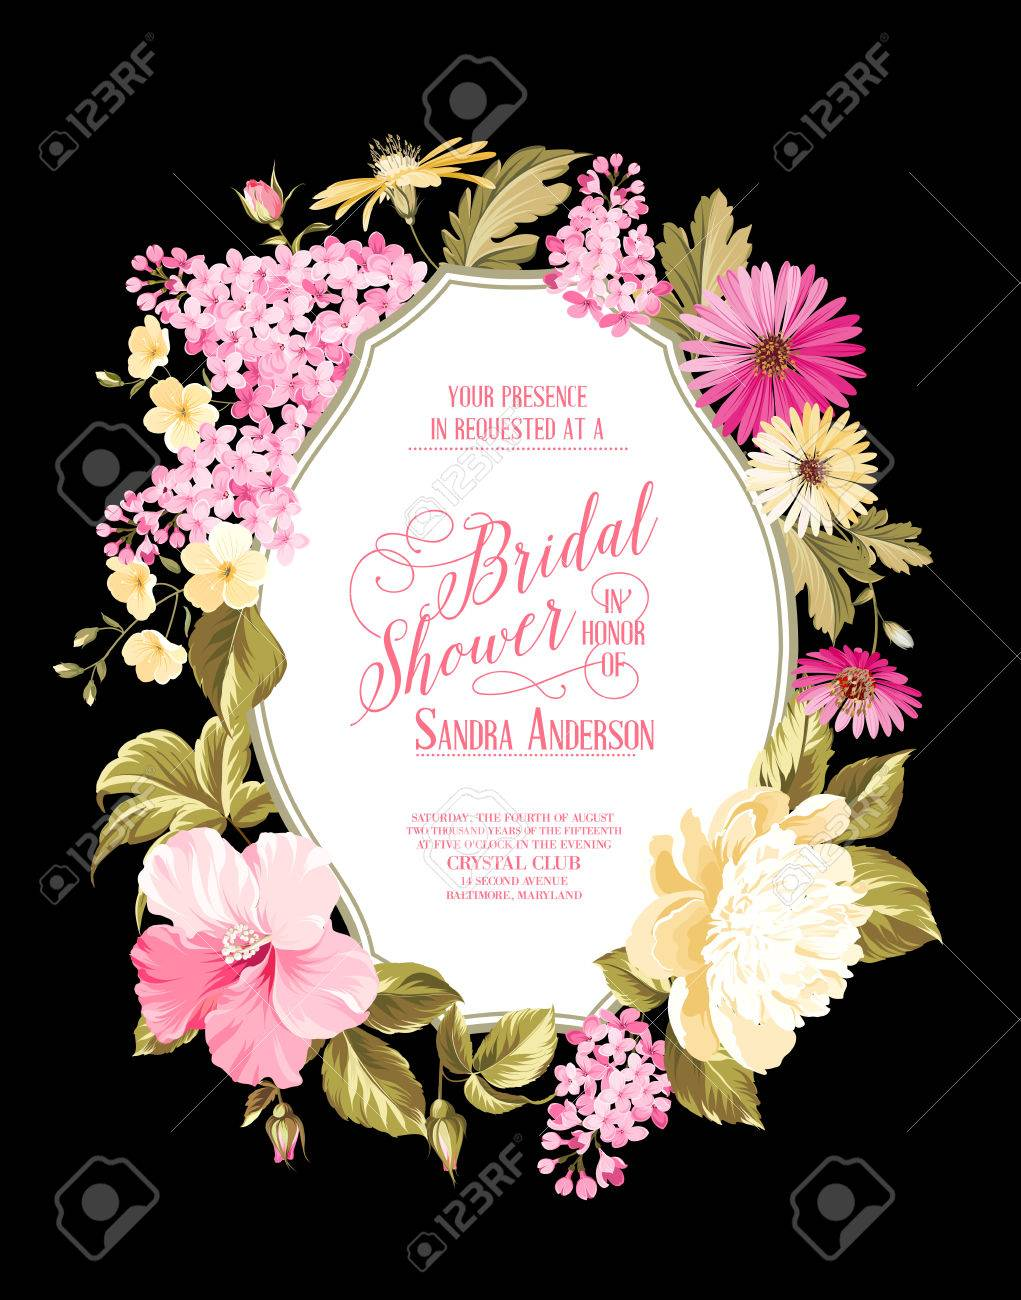 Bridal Shower Invitation Card With Calligraphic Text Vintage – Spring or Summer Theme Invitation Cards